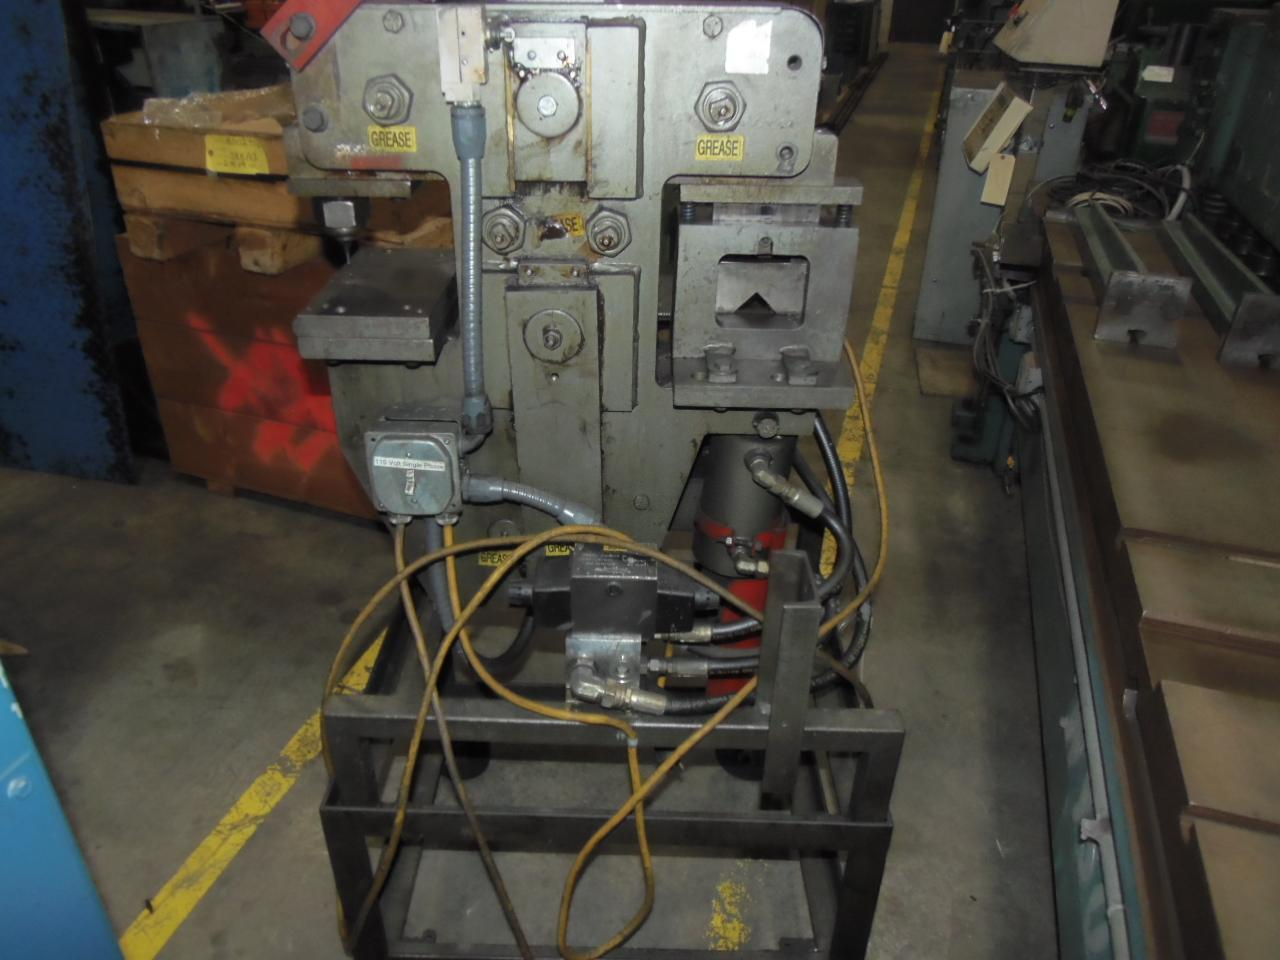 "25 TON EDWARDS IRONWORKER, 1"" PUNCH, OPEN STATION, SINGLE PHASE 110V, 1994"